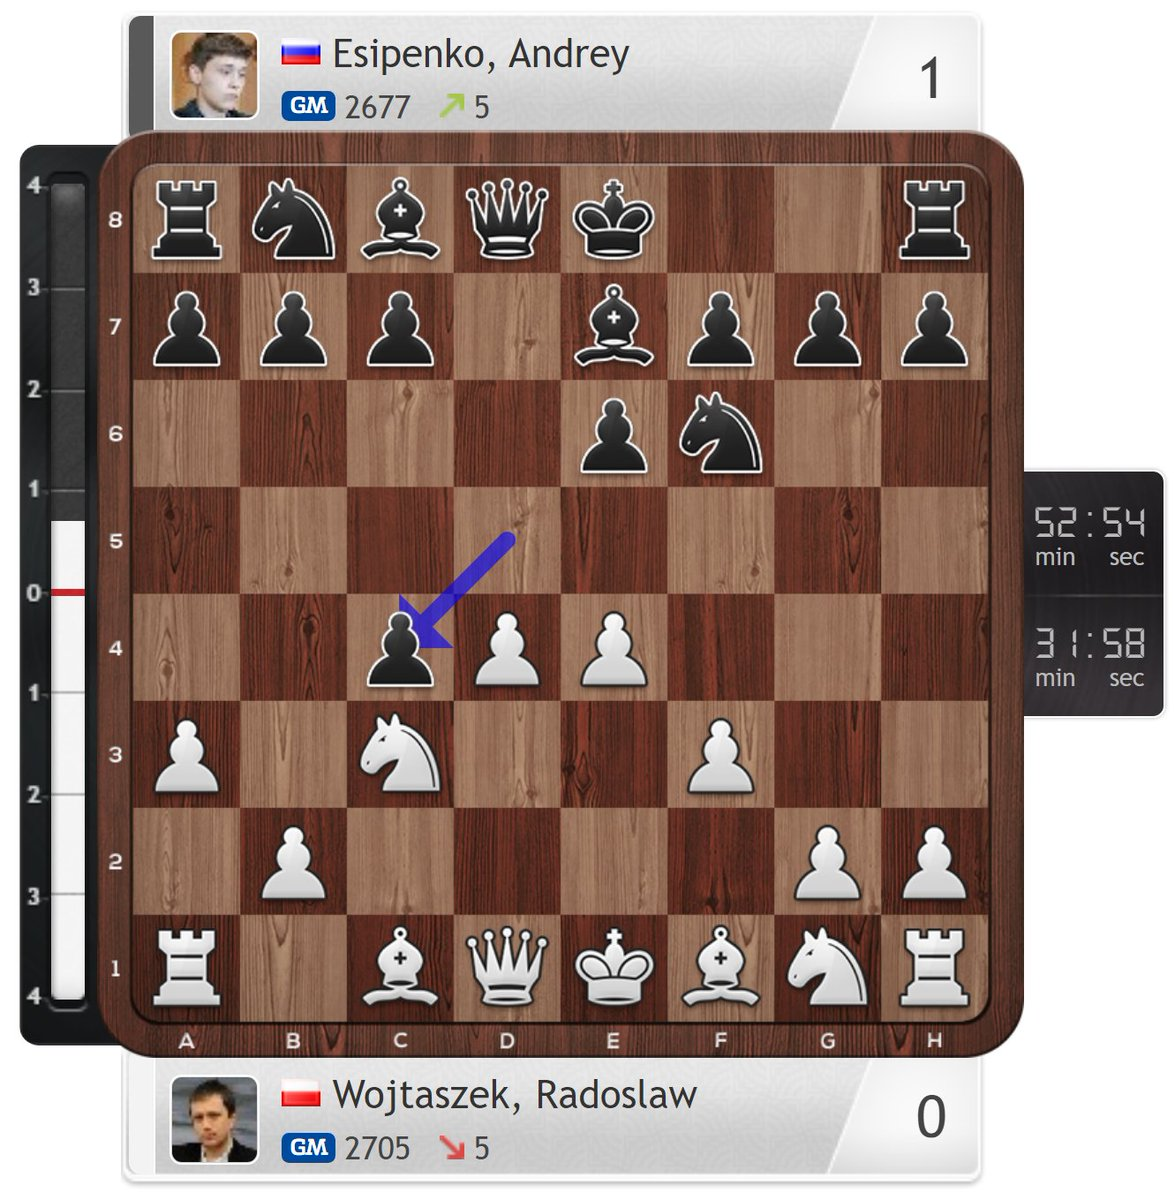 test Twitter Media - RT @gmjlh: Esipenko knows. #TataSteelChess https://t.co/0X74nWhqYh